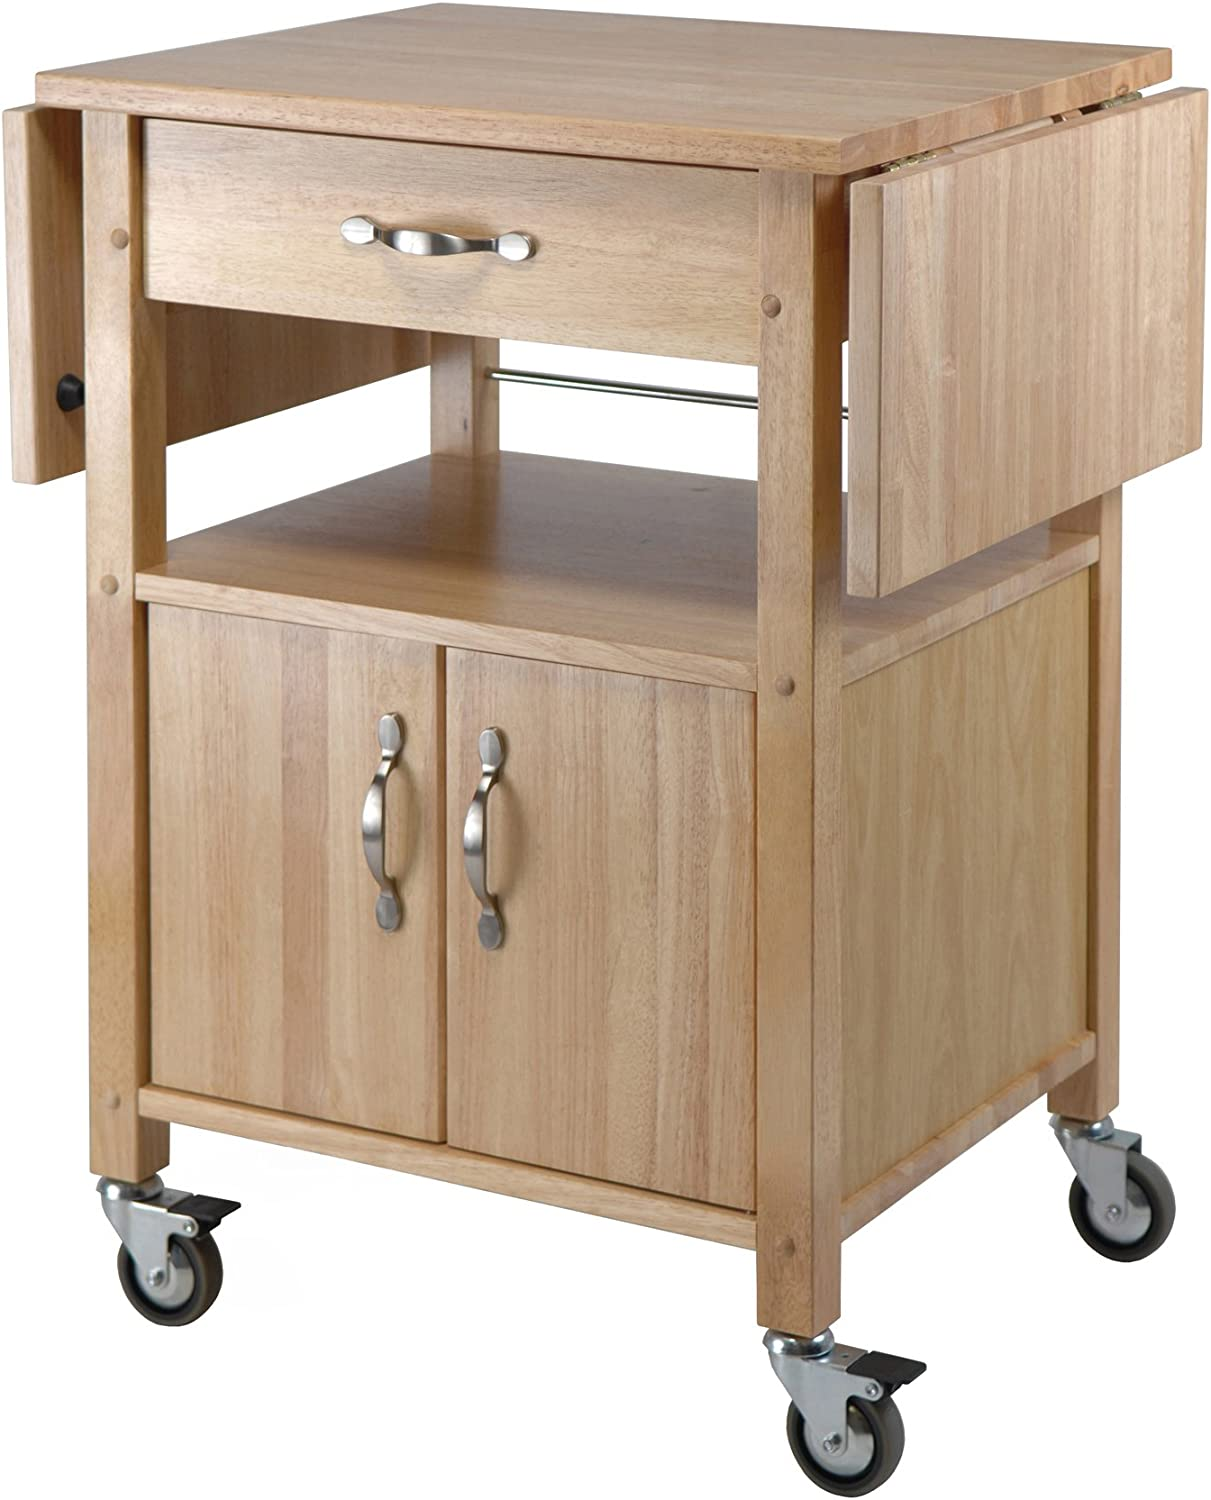 Winsome Wood Drop-Leaf Kitchen Utility Cart